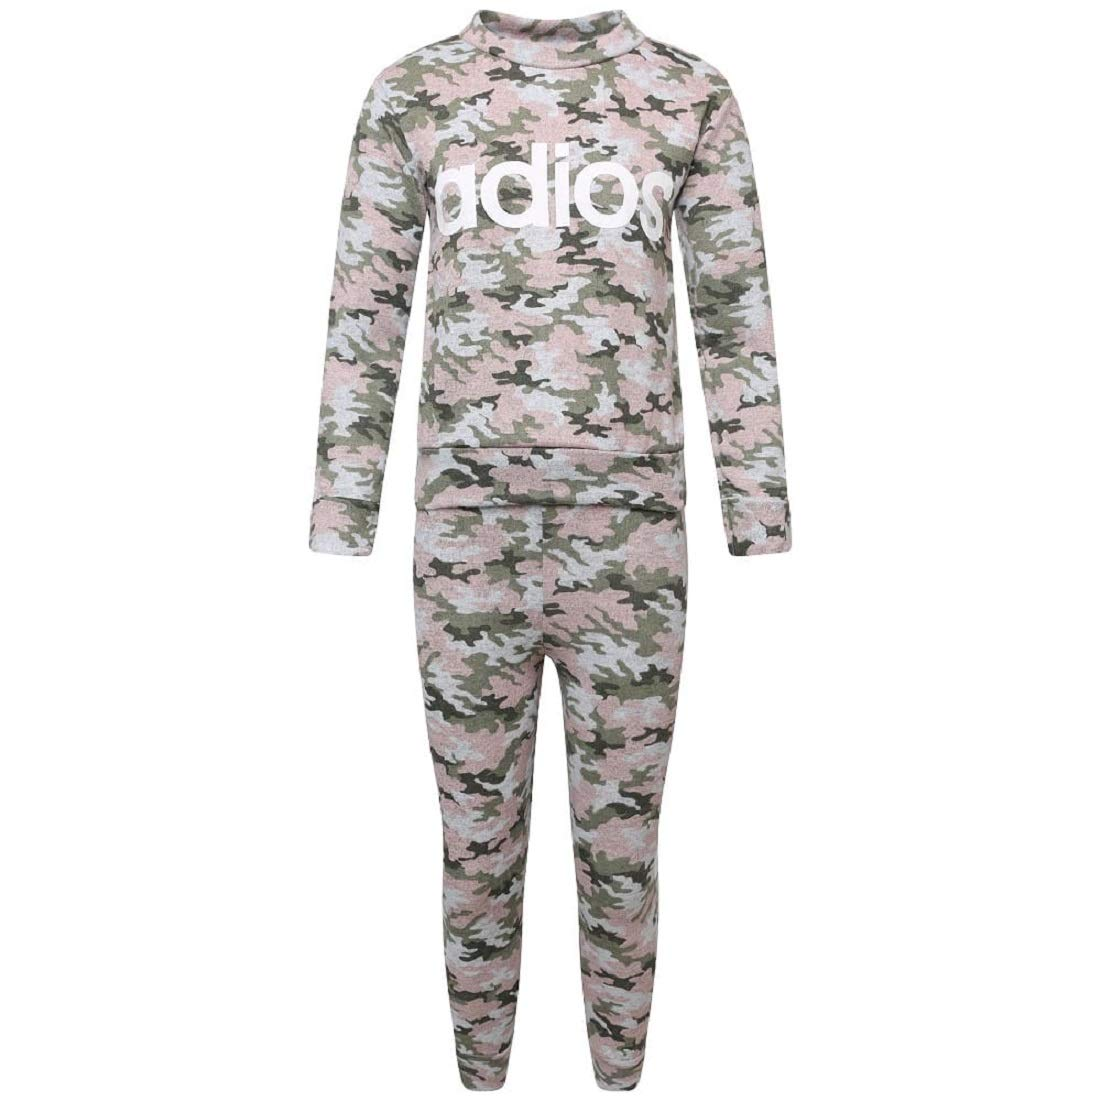 New Kids Girls Children 2 Piece Set Rainbow Camouflage Print Loungewear Joggers Tracksuit Age 7-13 Years